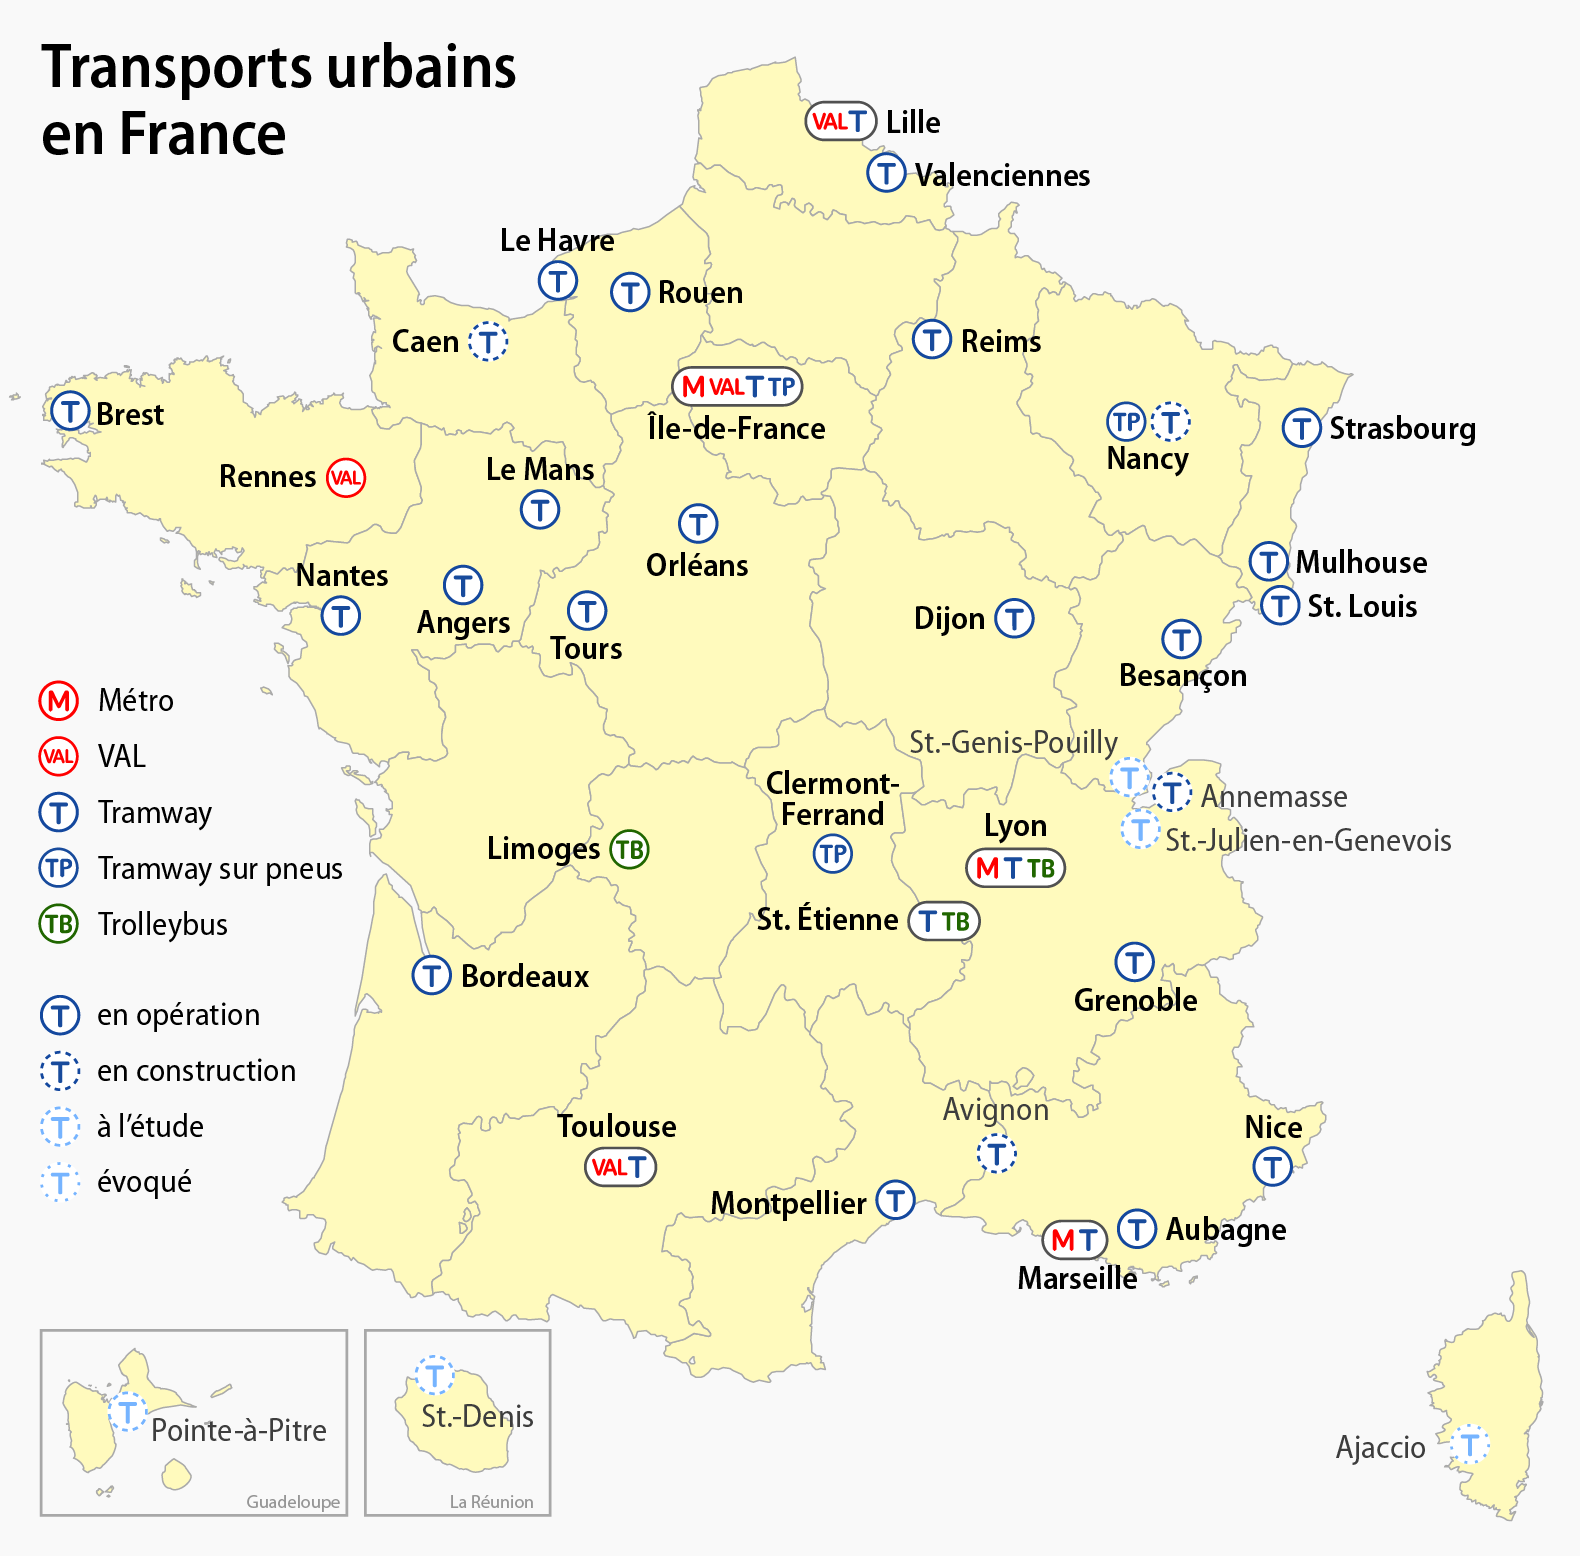 carte de france strasbourg File:Carte des transports urbains en France.png   Wikimedia Commons